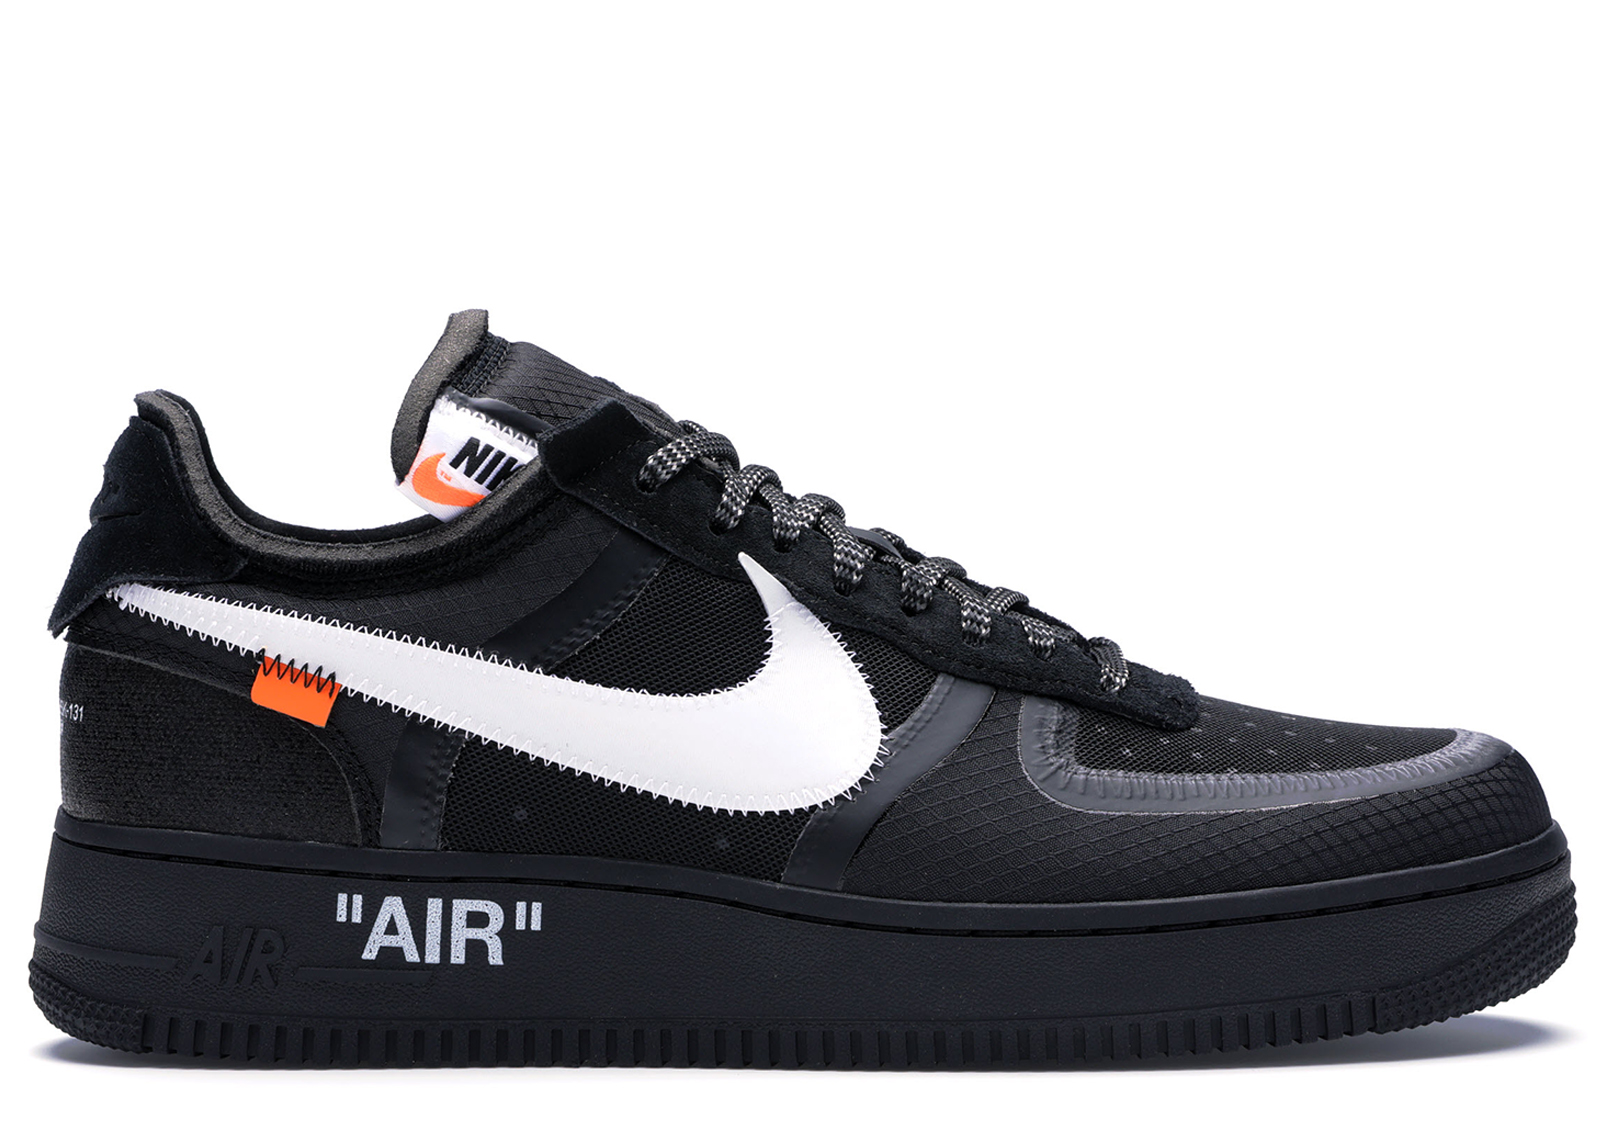 2018 Off White x Nike Air Force 1 '07 Black White Men's Size